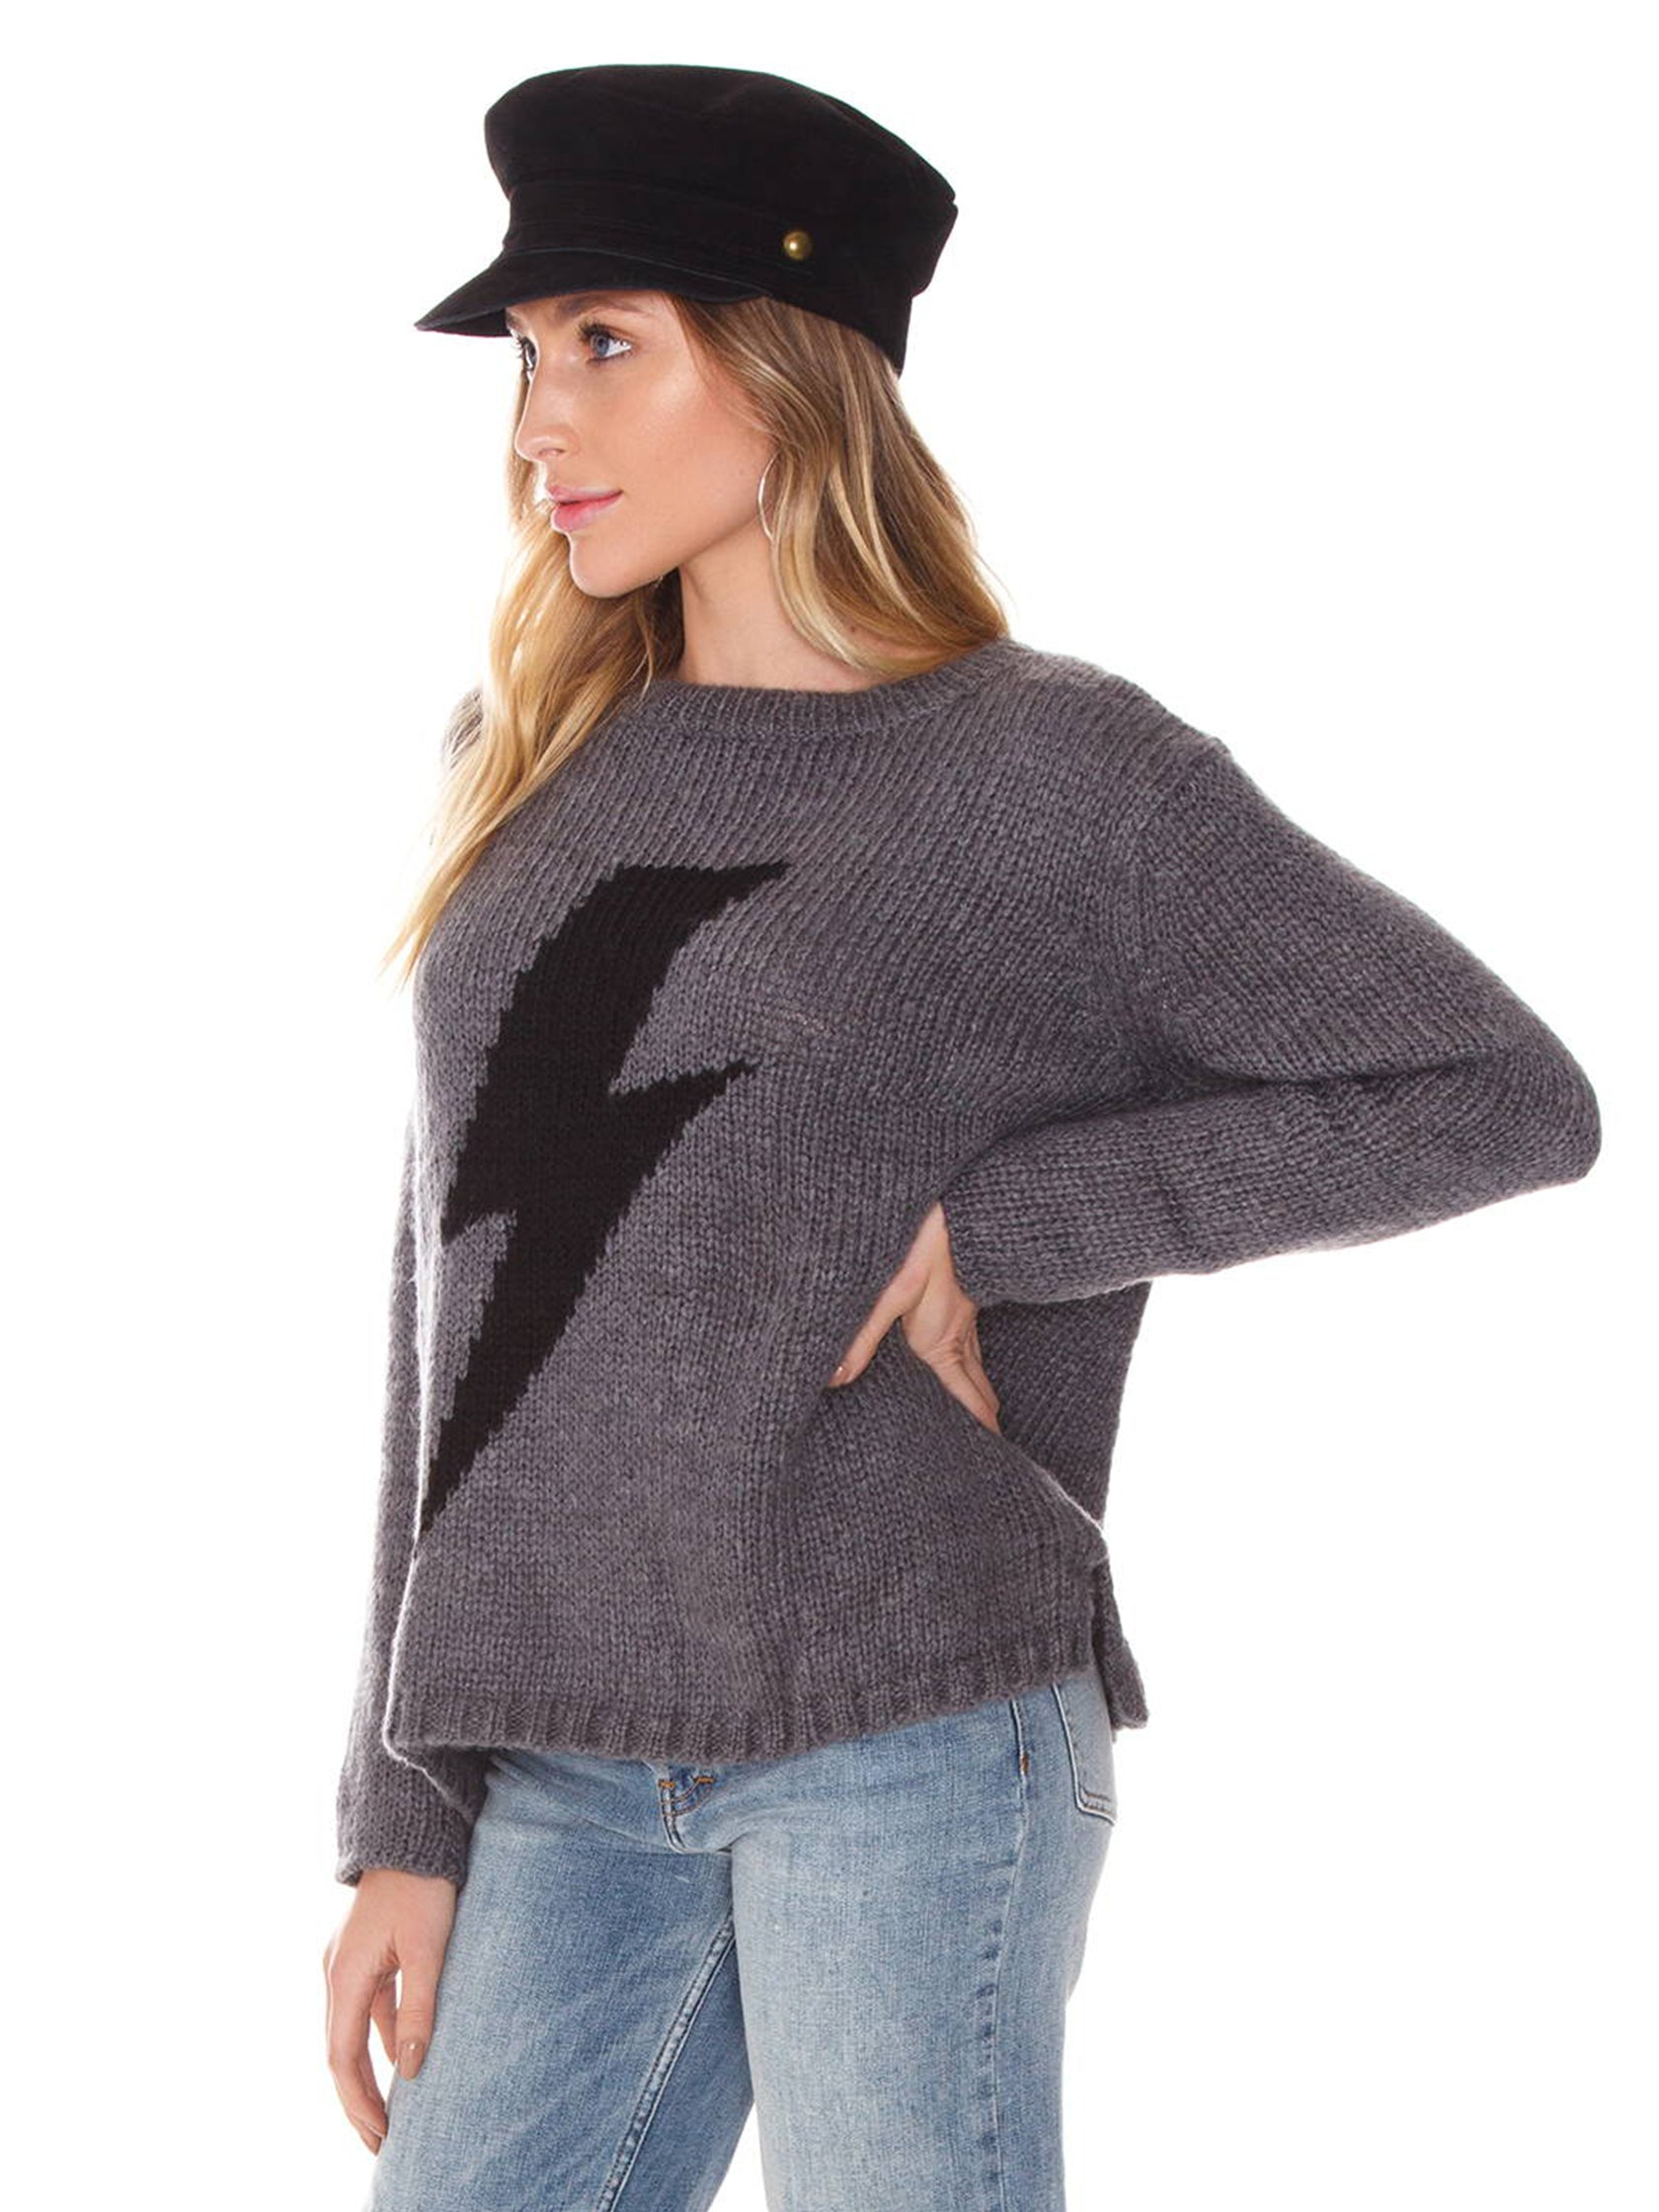 Women wearing a sweater rental from Wooden Ships called Bolt Crewneck